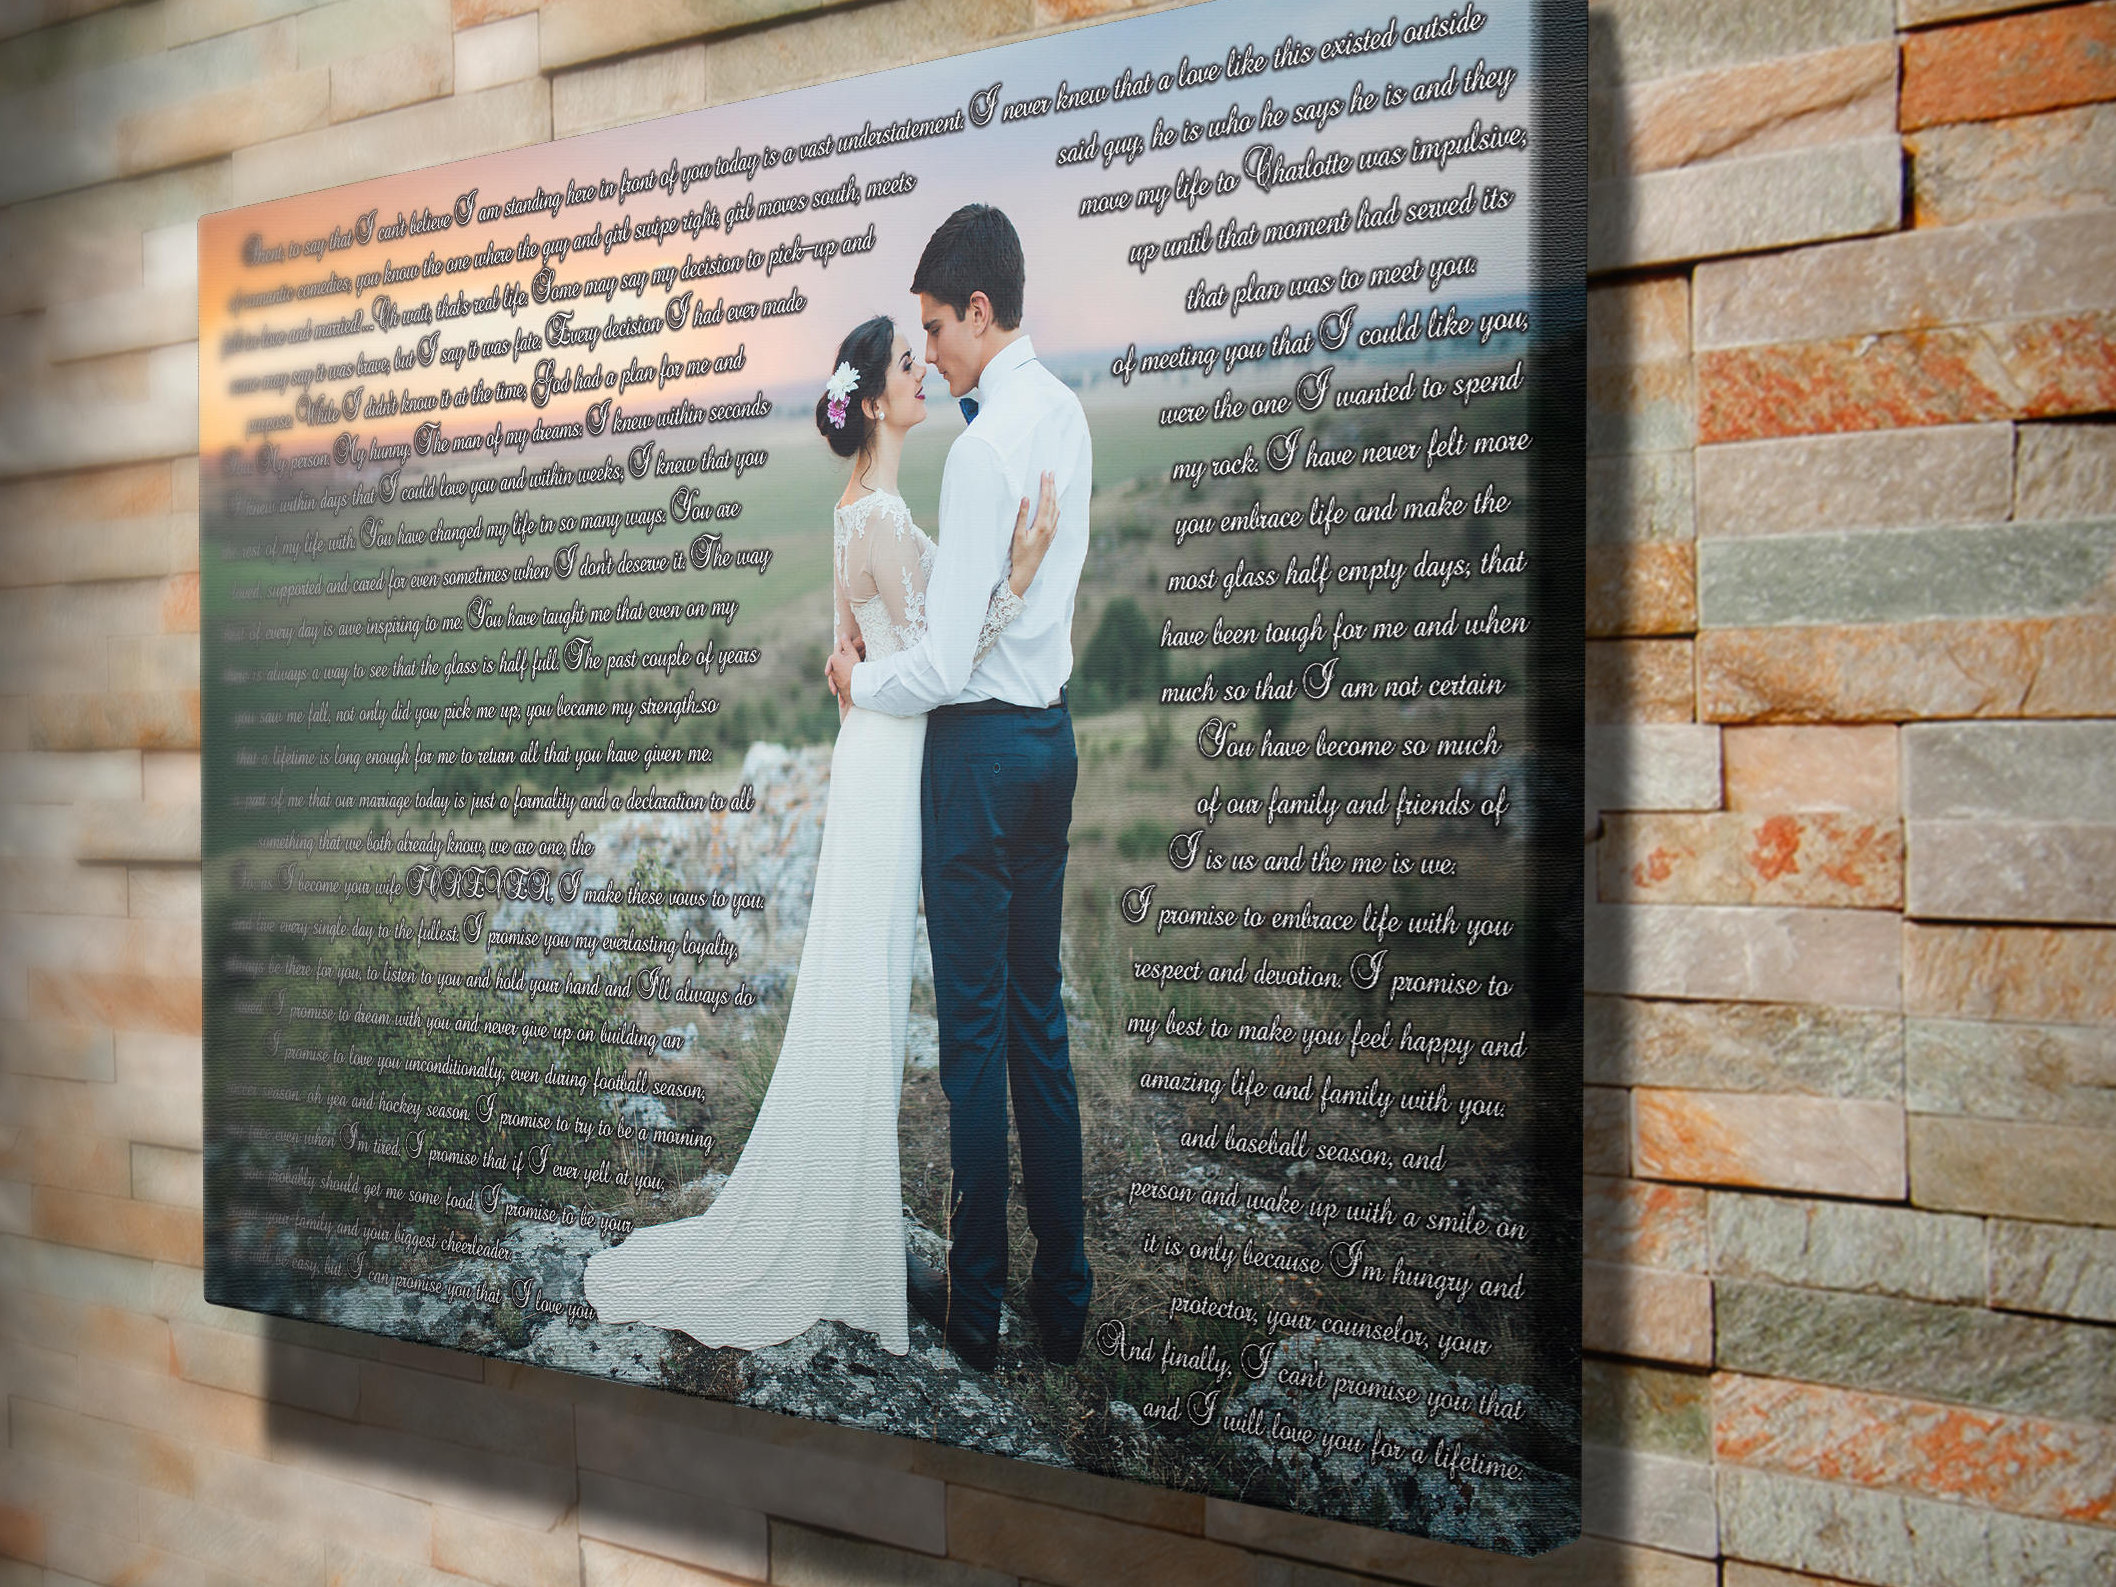 Personalized newlywed gift ideas, 1 year wedding anniversary gift, wedding  gift for couple, his and hers vows, wedding photo canvas